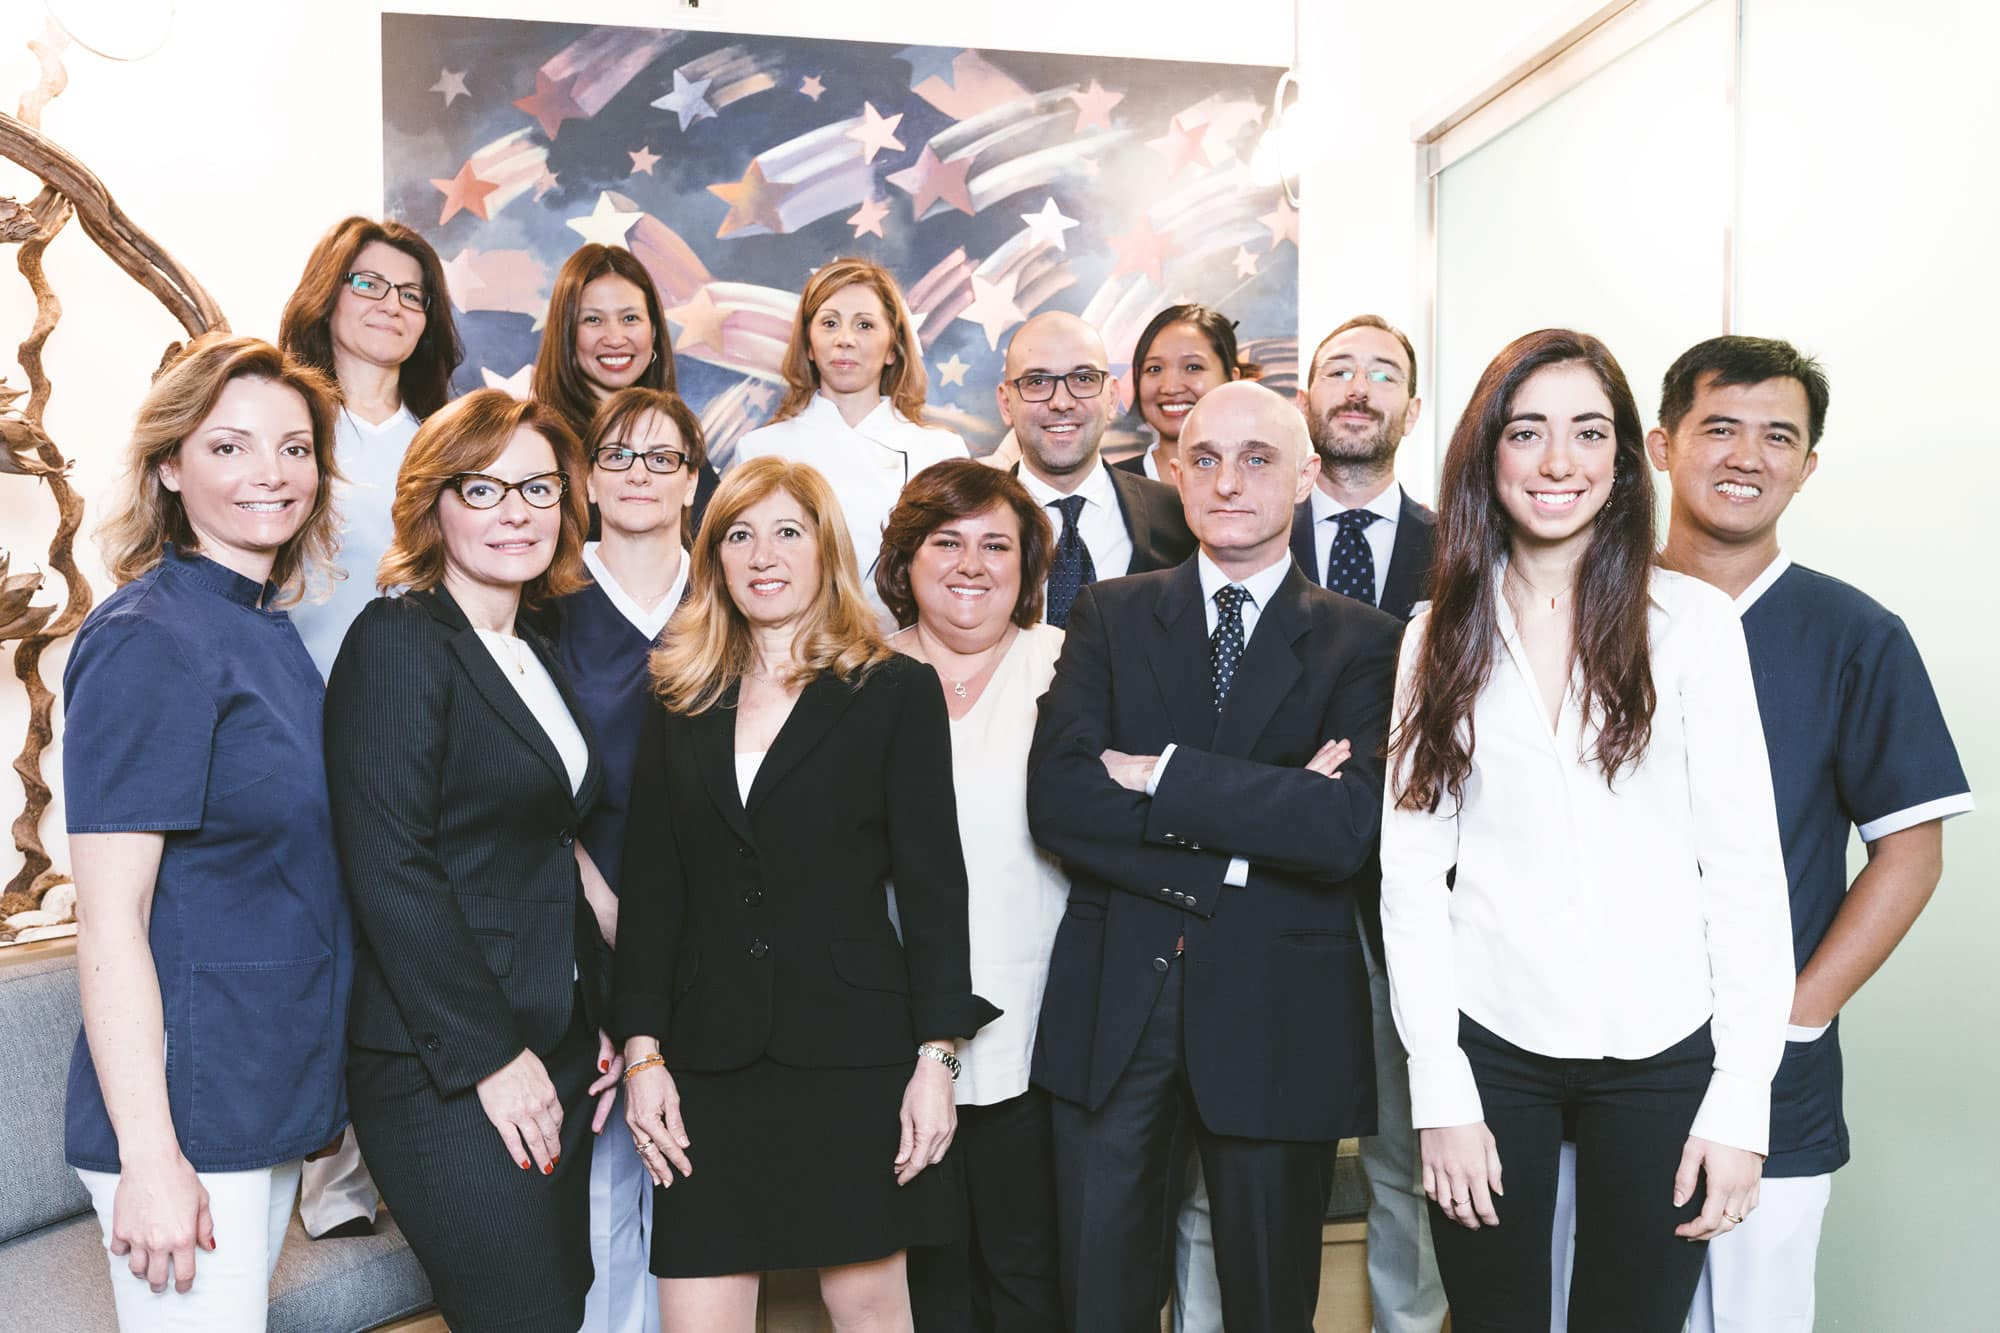 Staff | Continolo & Partners